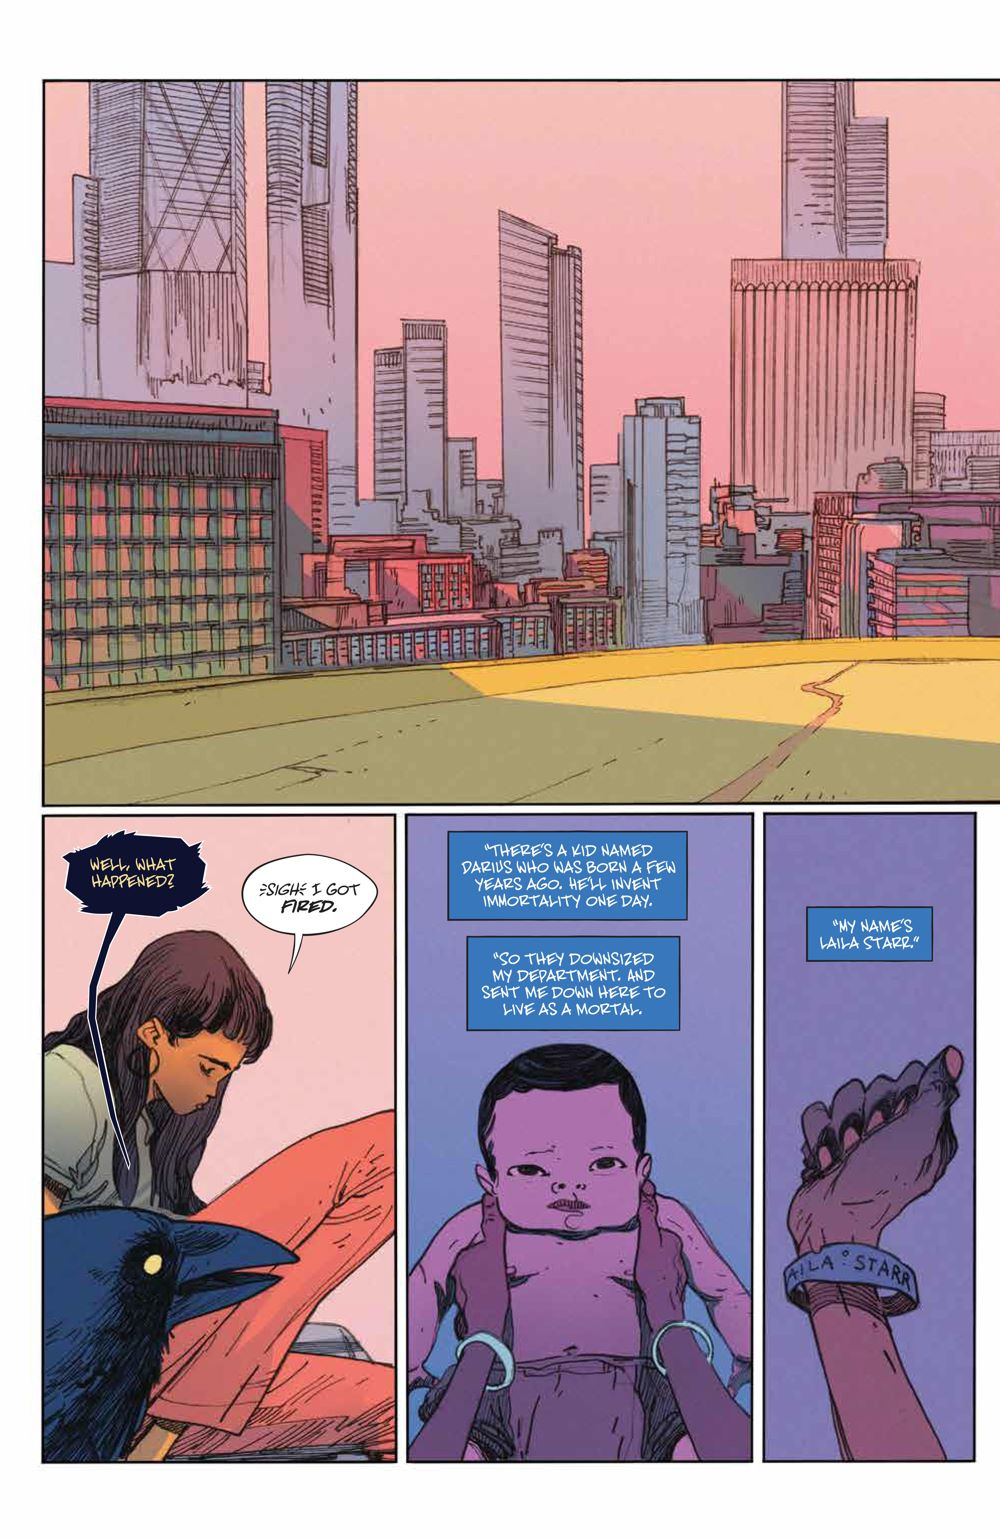 ManyDeathsLailaStarr_002_PRESS_4 ComicList Previews: THE MANY DEATHS OF LAILA STARR #2 (OF 5)